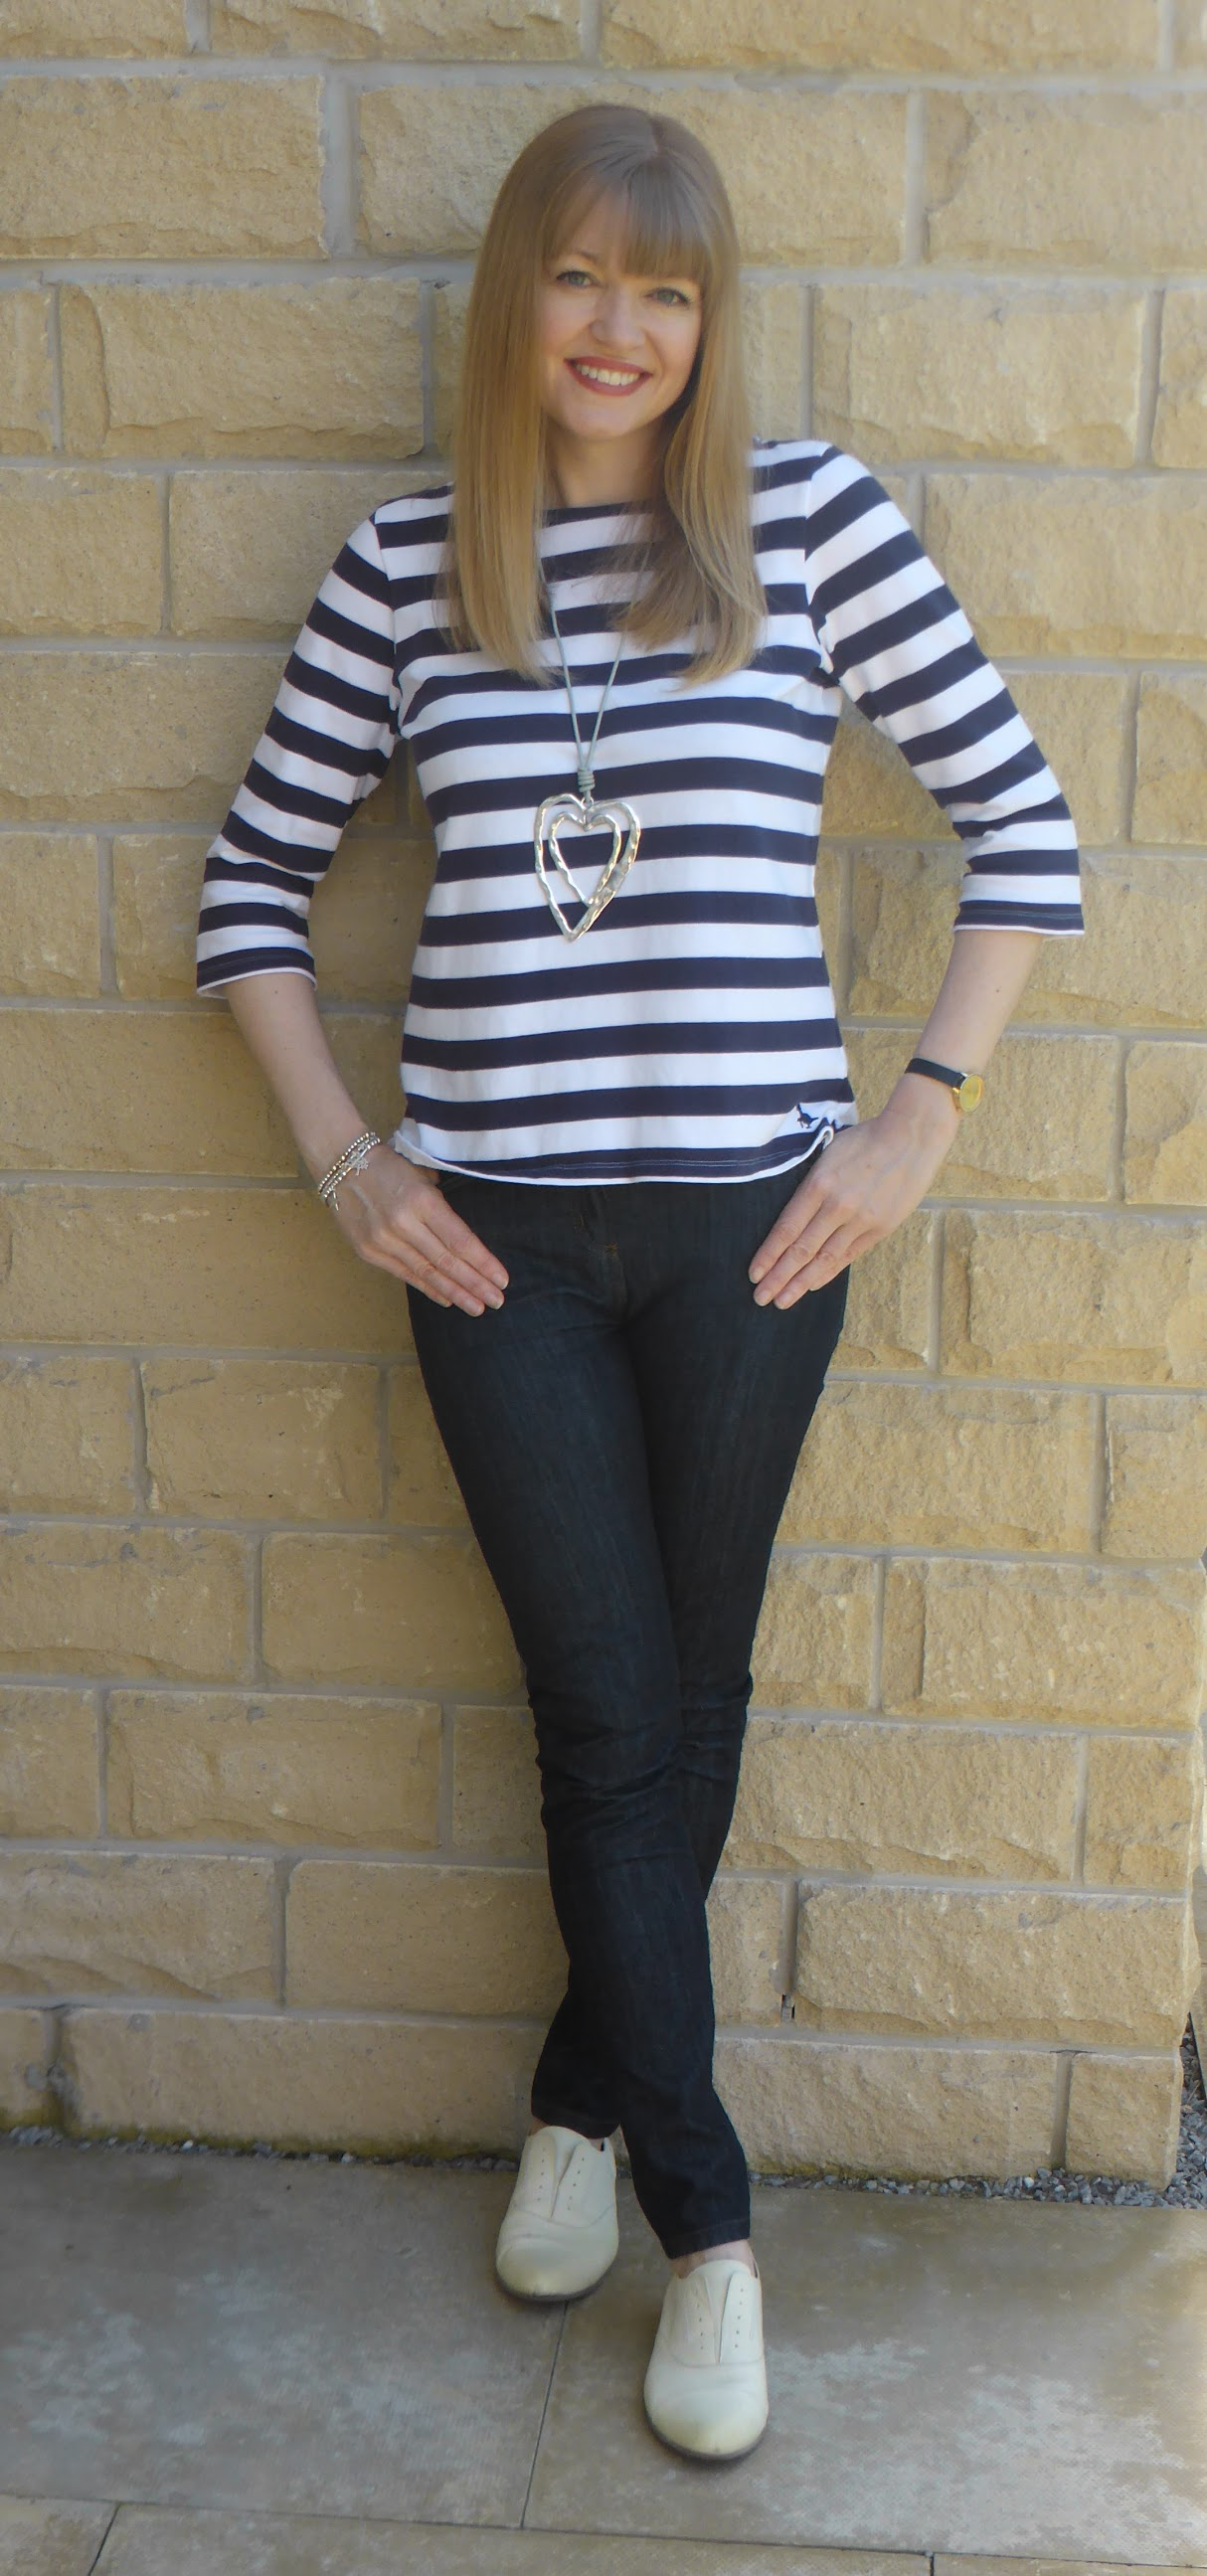 Over 40 blogger What Lizzy Loves wears Jack Wills breton top with skinny jeans and yellow Clarks brogues